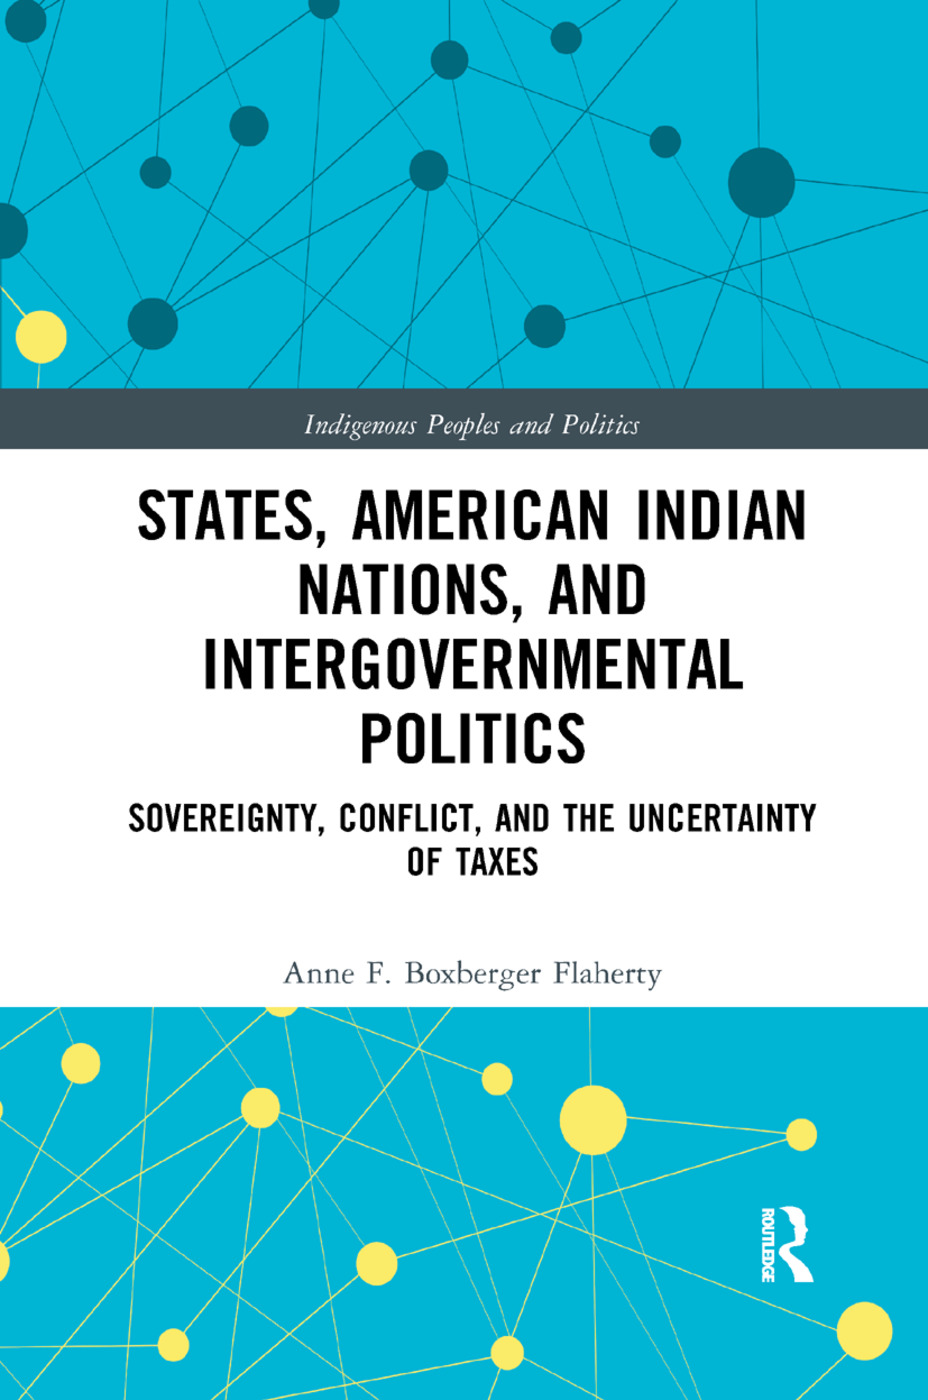 States, American Indian Nations, and Intergovernmental Politics: Sovereignty, Conflict, and the Uncertainty of Taxes, 1st Edition (Paperback) book cover